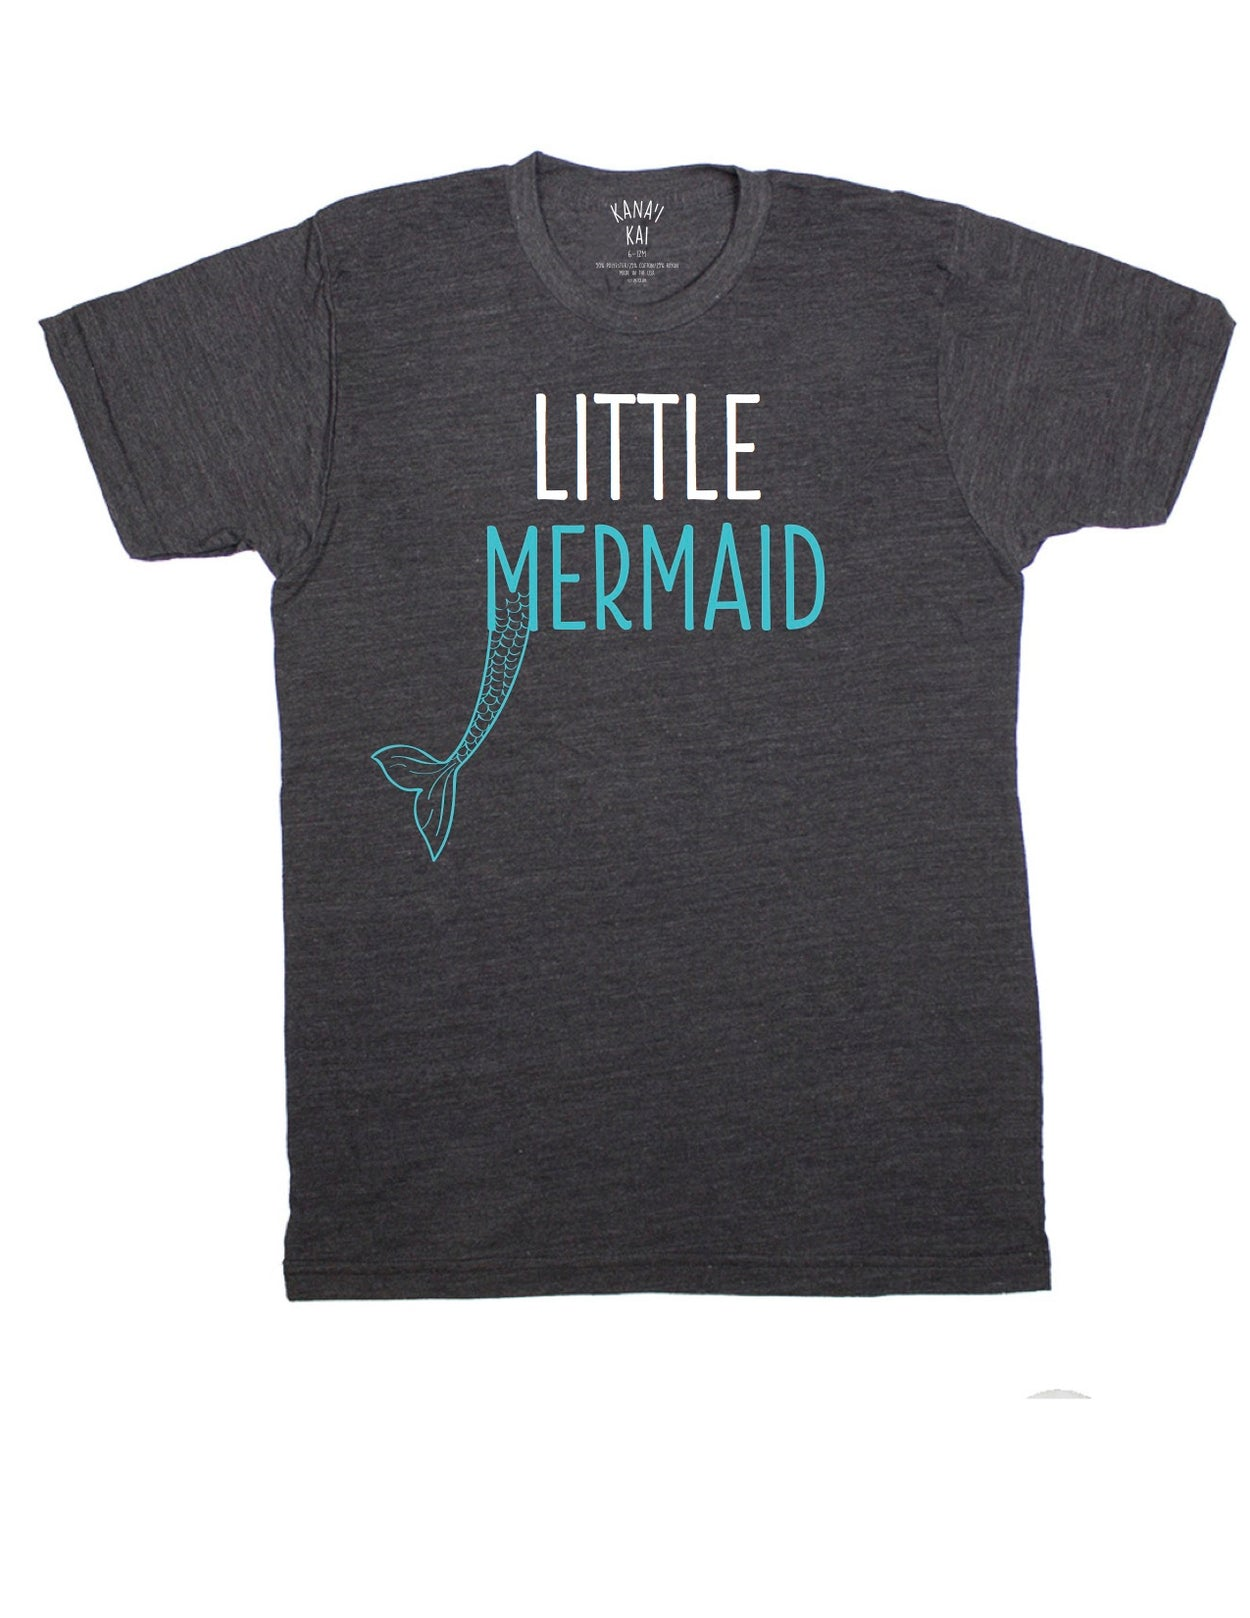 Kana'i Kai - Little Mermaid (Tee)